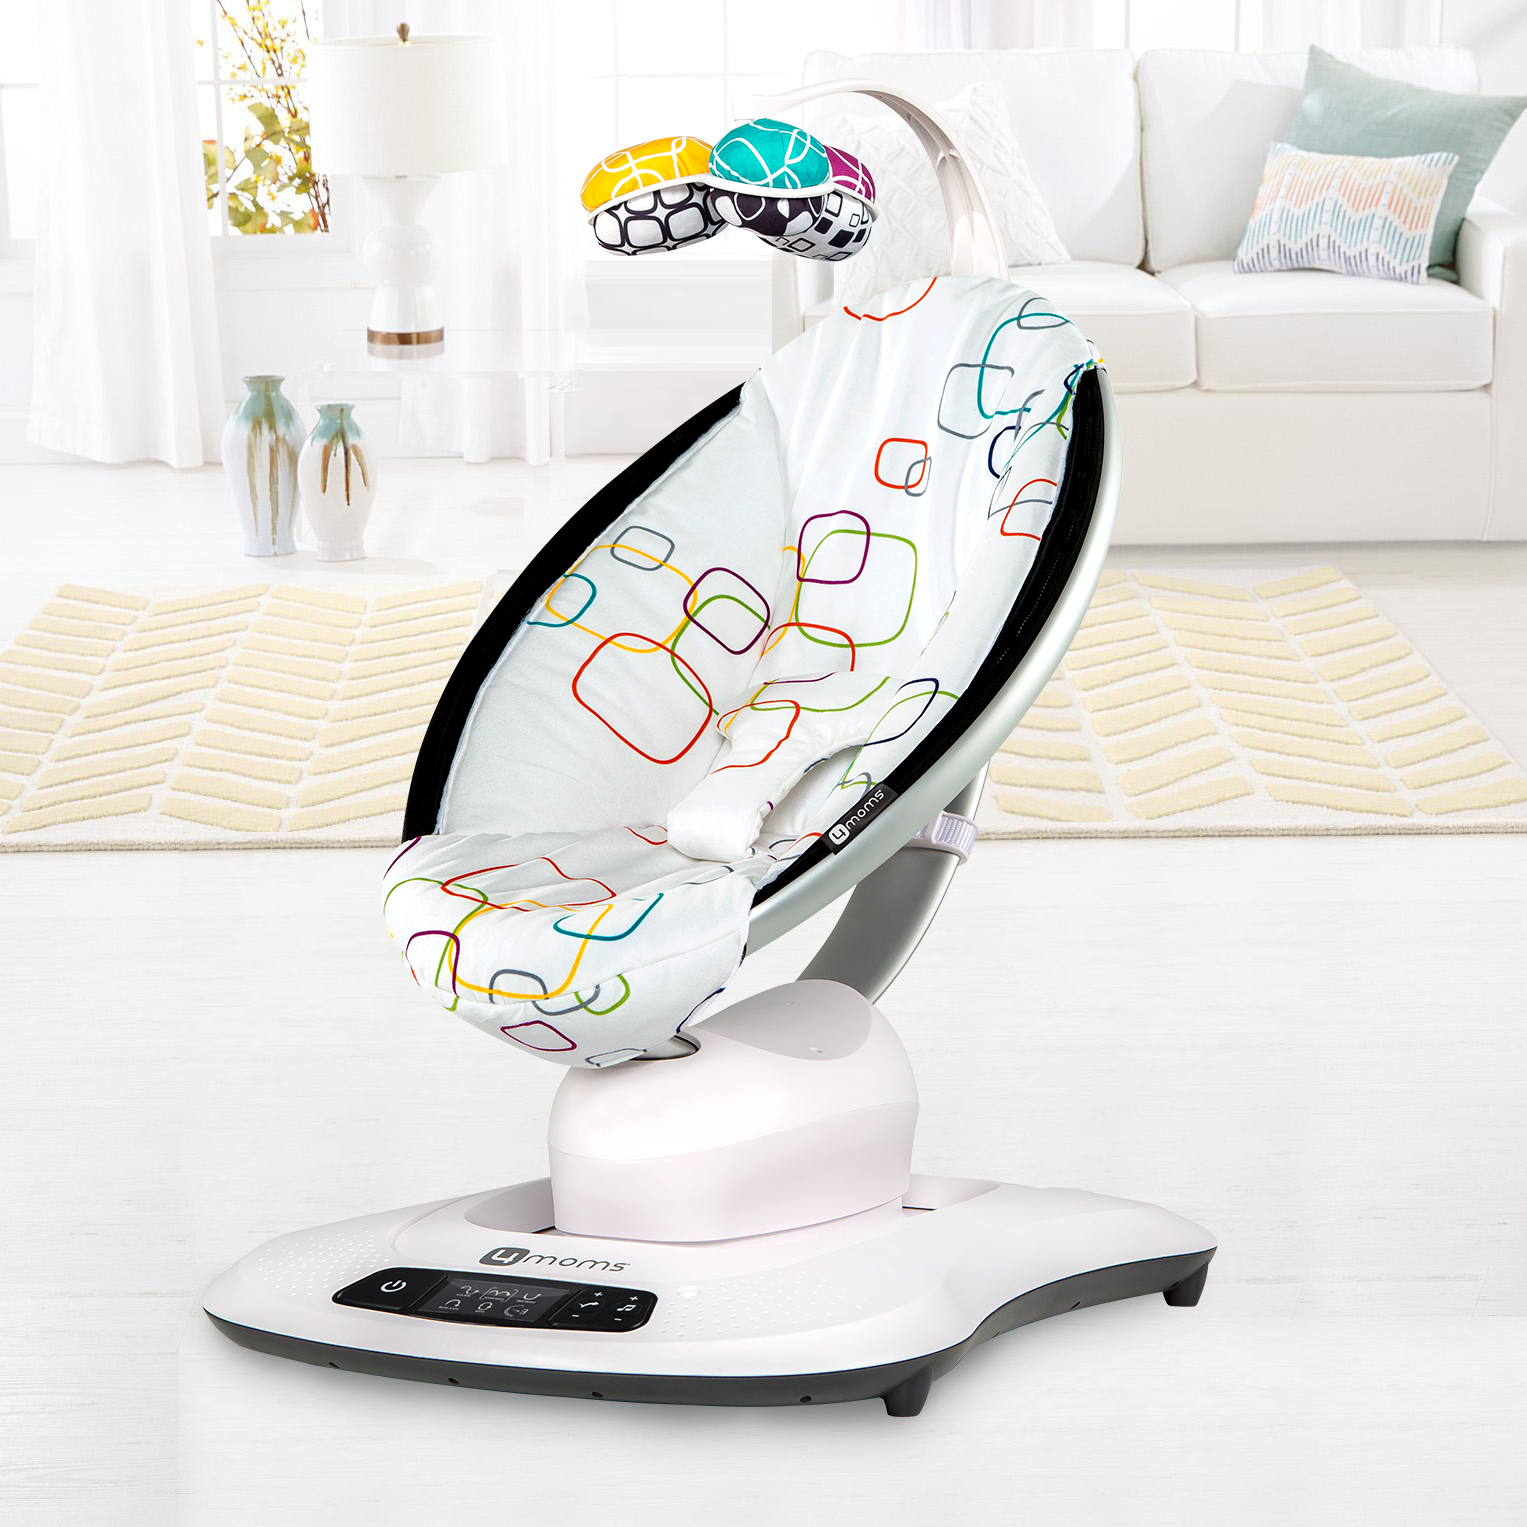 Super Luxury Electric Rocking Chair To Coax Baby Sleeping Artifact Baby Rocking Chair To Comfort Cradle Bed